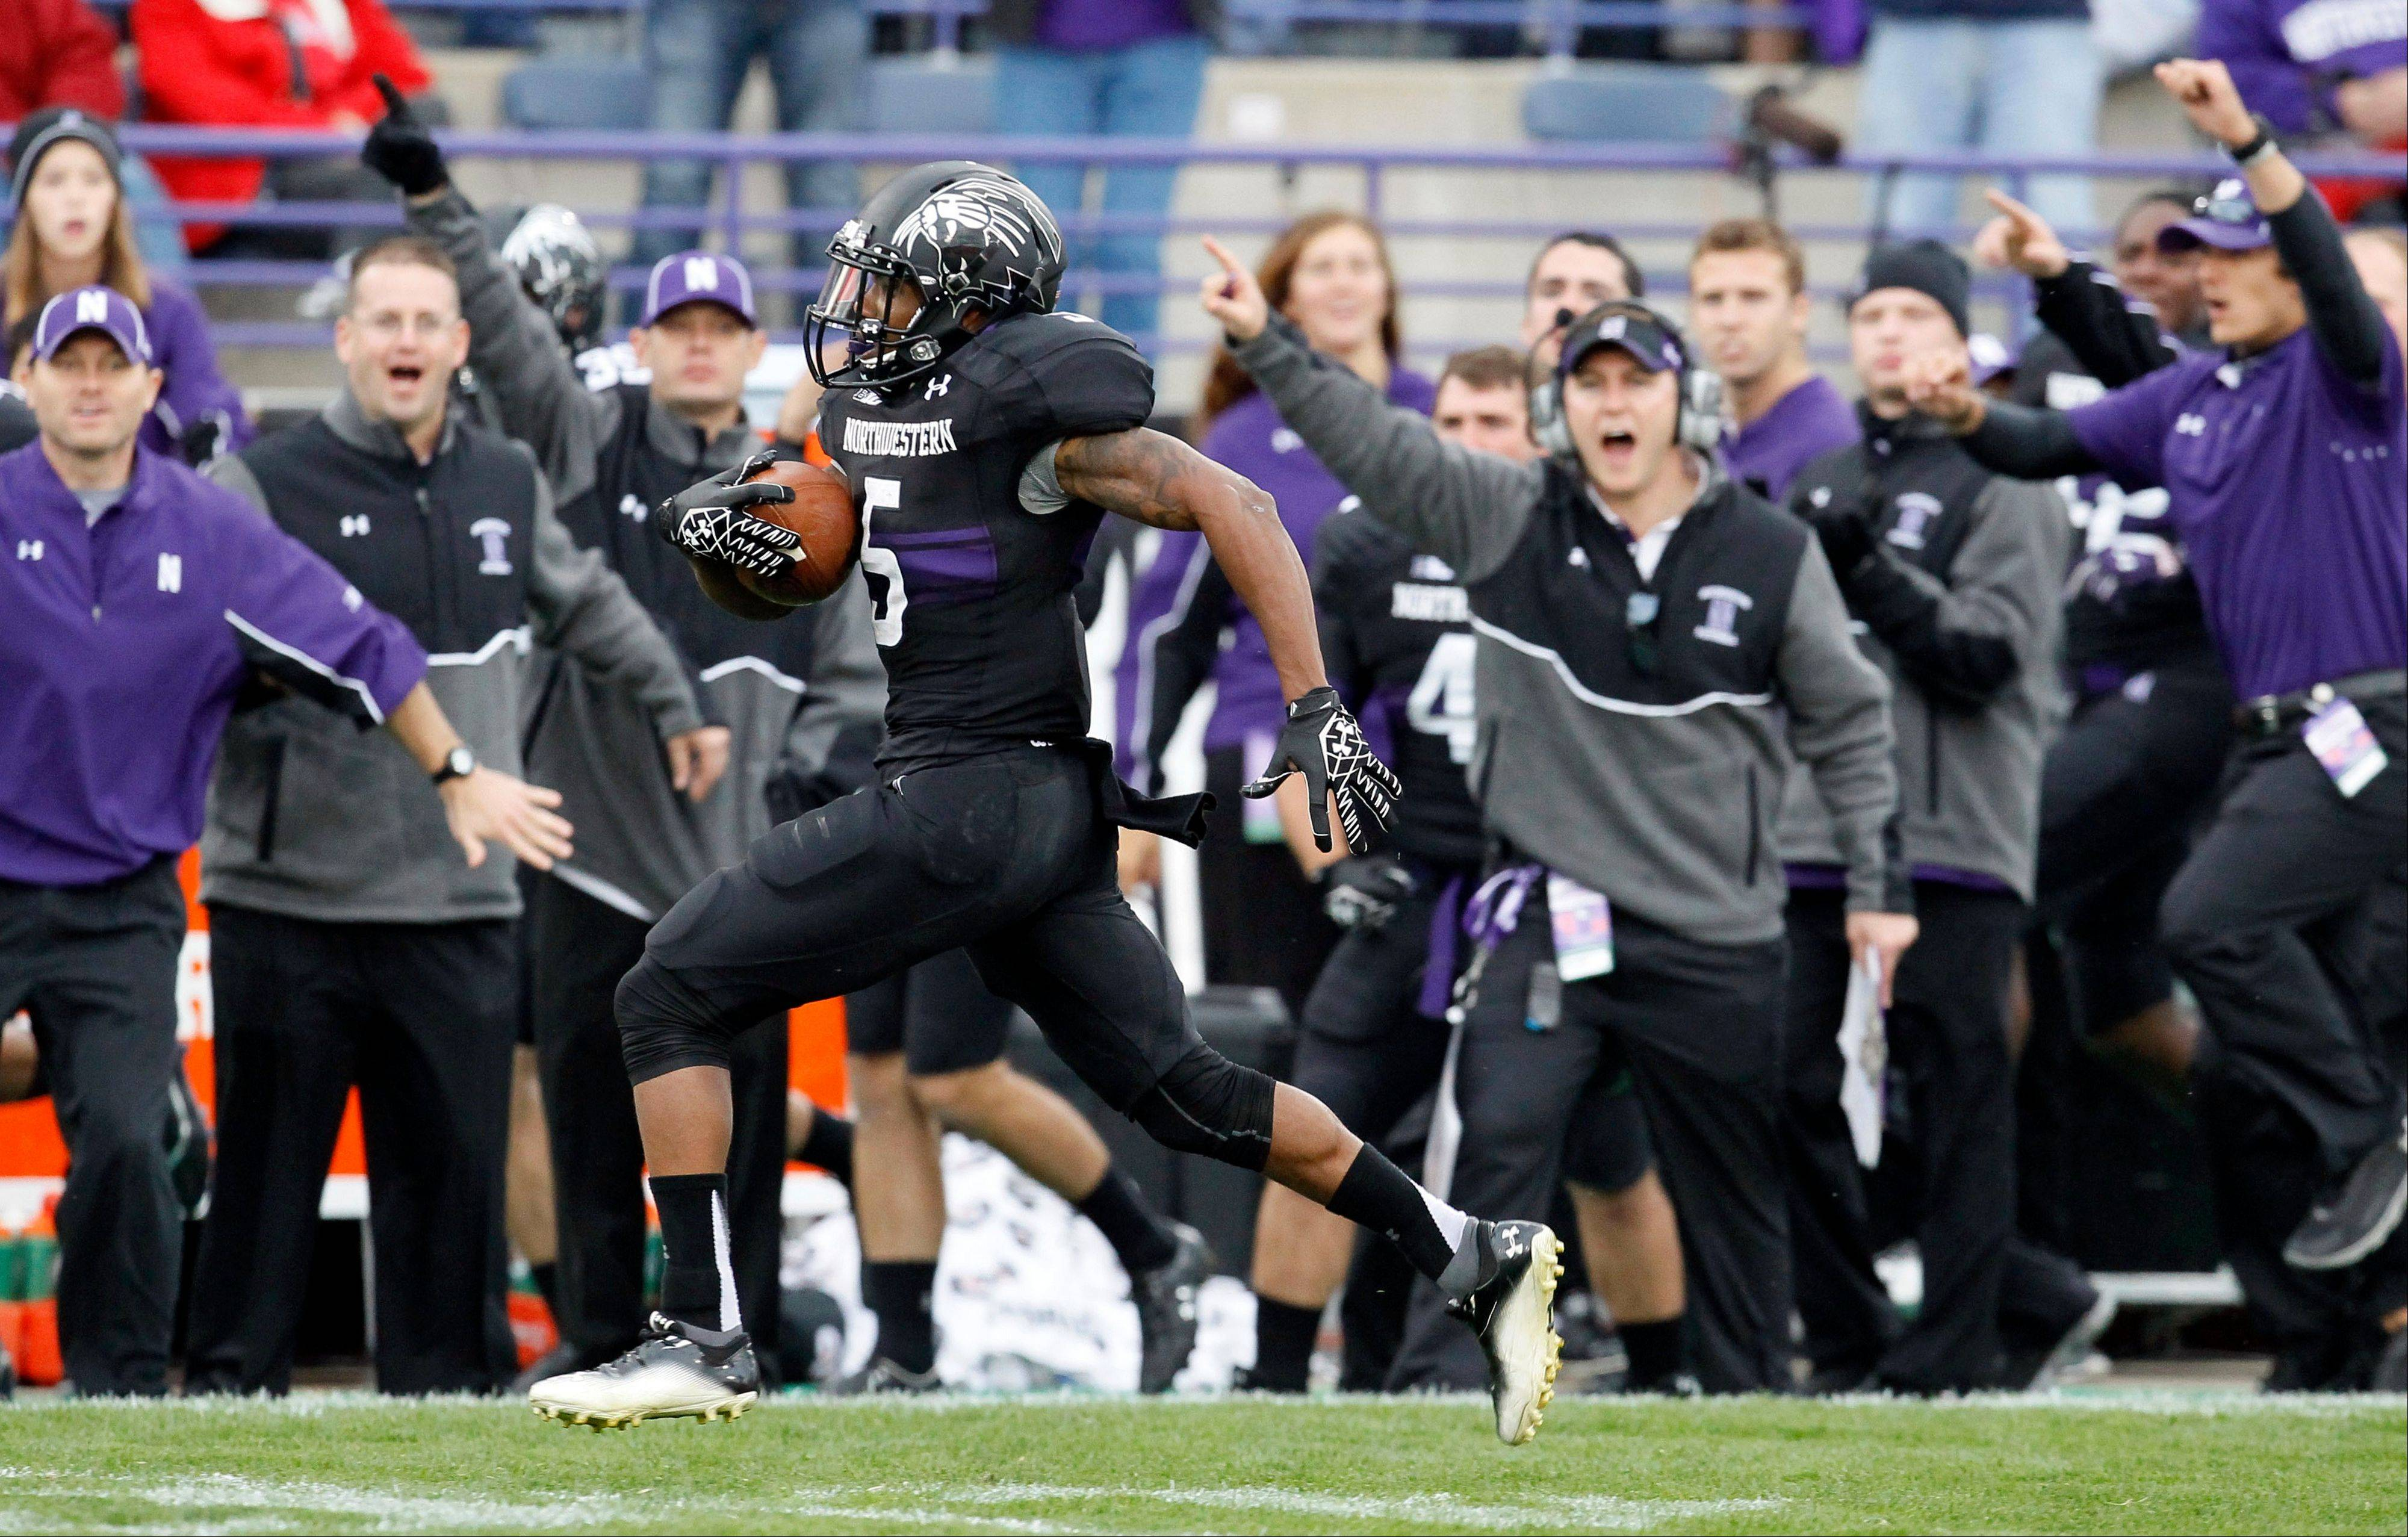 Northwestern running back Venric Mark, here heading for an 80-yard touchdown against Nebraska, leads the Big Ten in all-purpose yards per game and has rushed for more than 100 yards in five games this season.